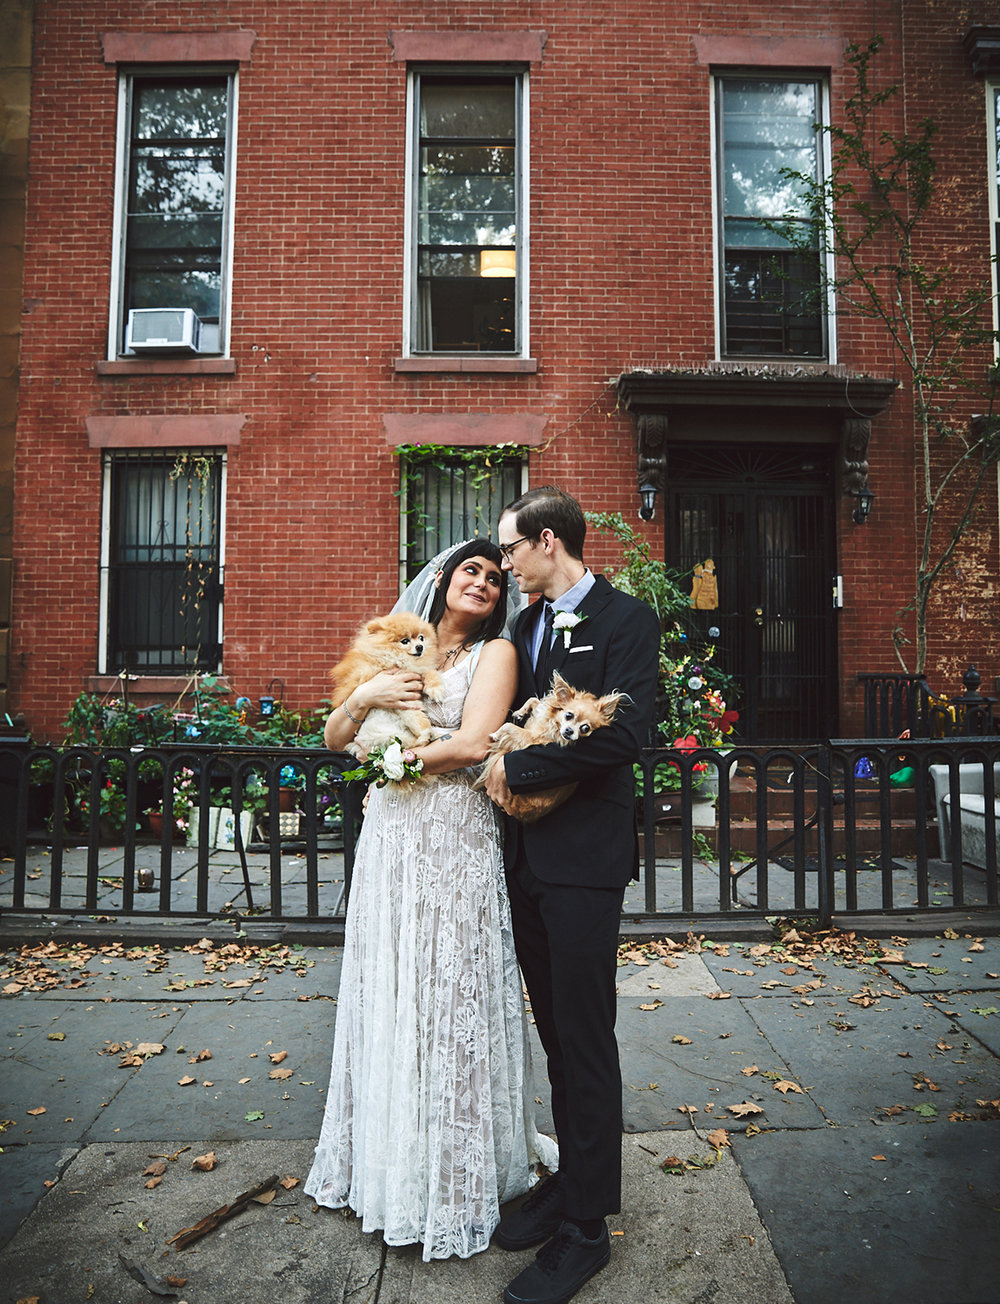 170920_FortGreeneWeddingPhotography_BrooklynWeddingPhotographer_By_BriJohnsonWeddings_0005.jpg